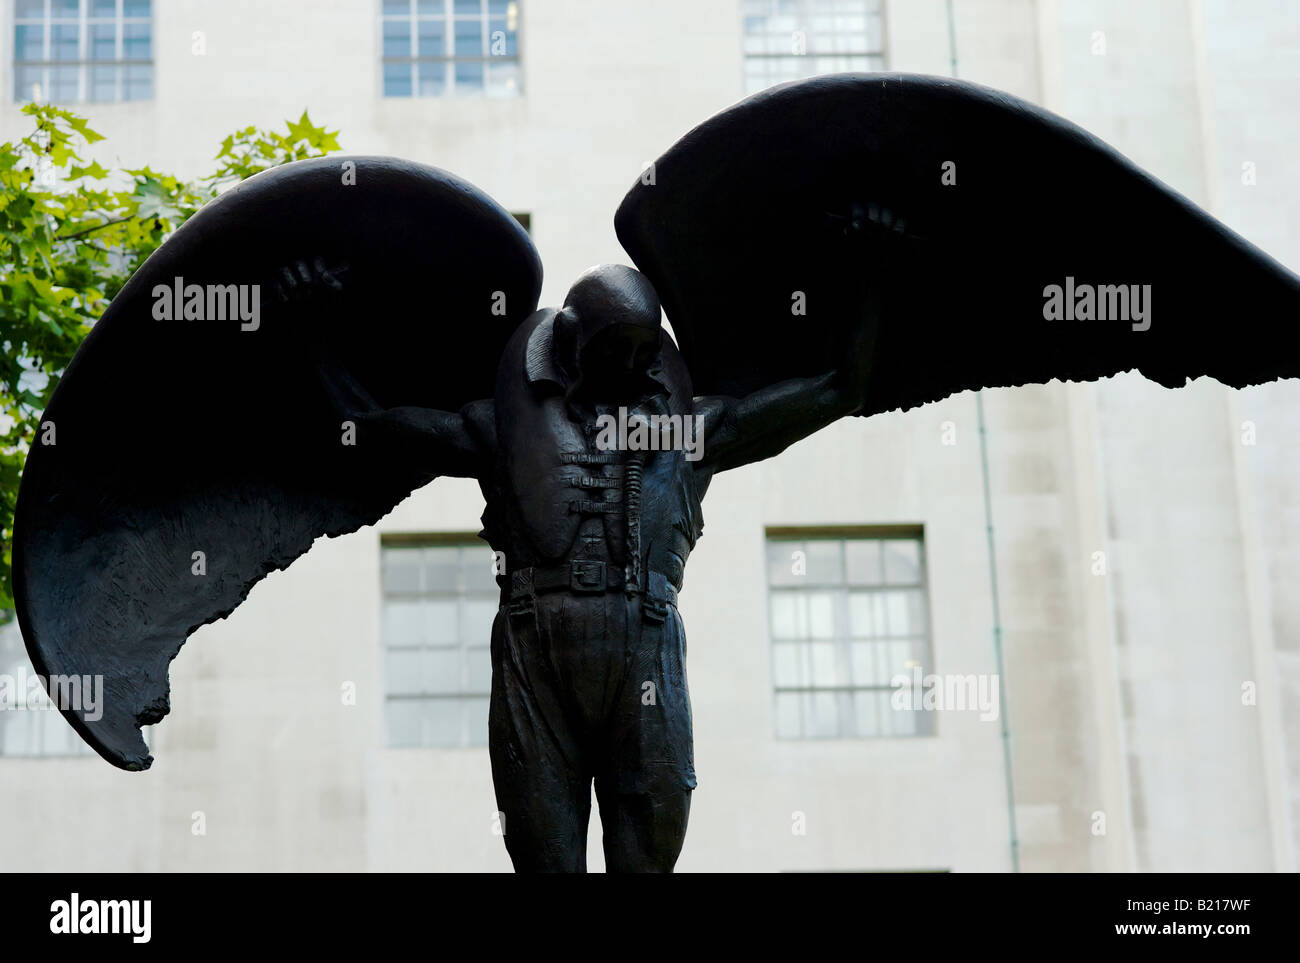 Memorial to the Fleet Air Arm situated outside the Ministry of Defence in London UK - Stock Image